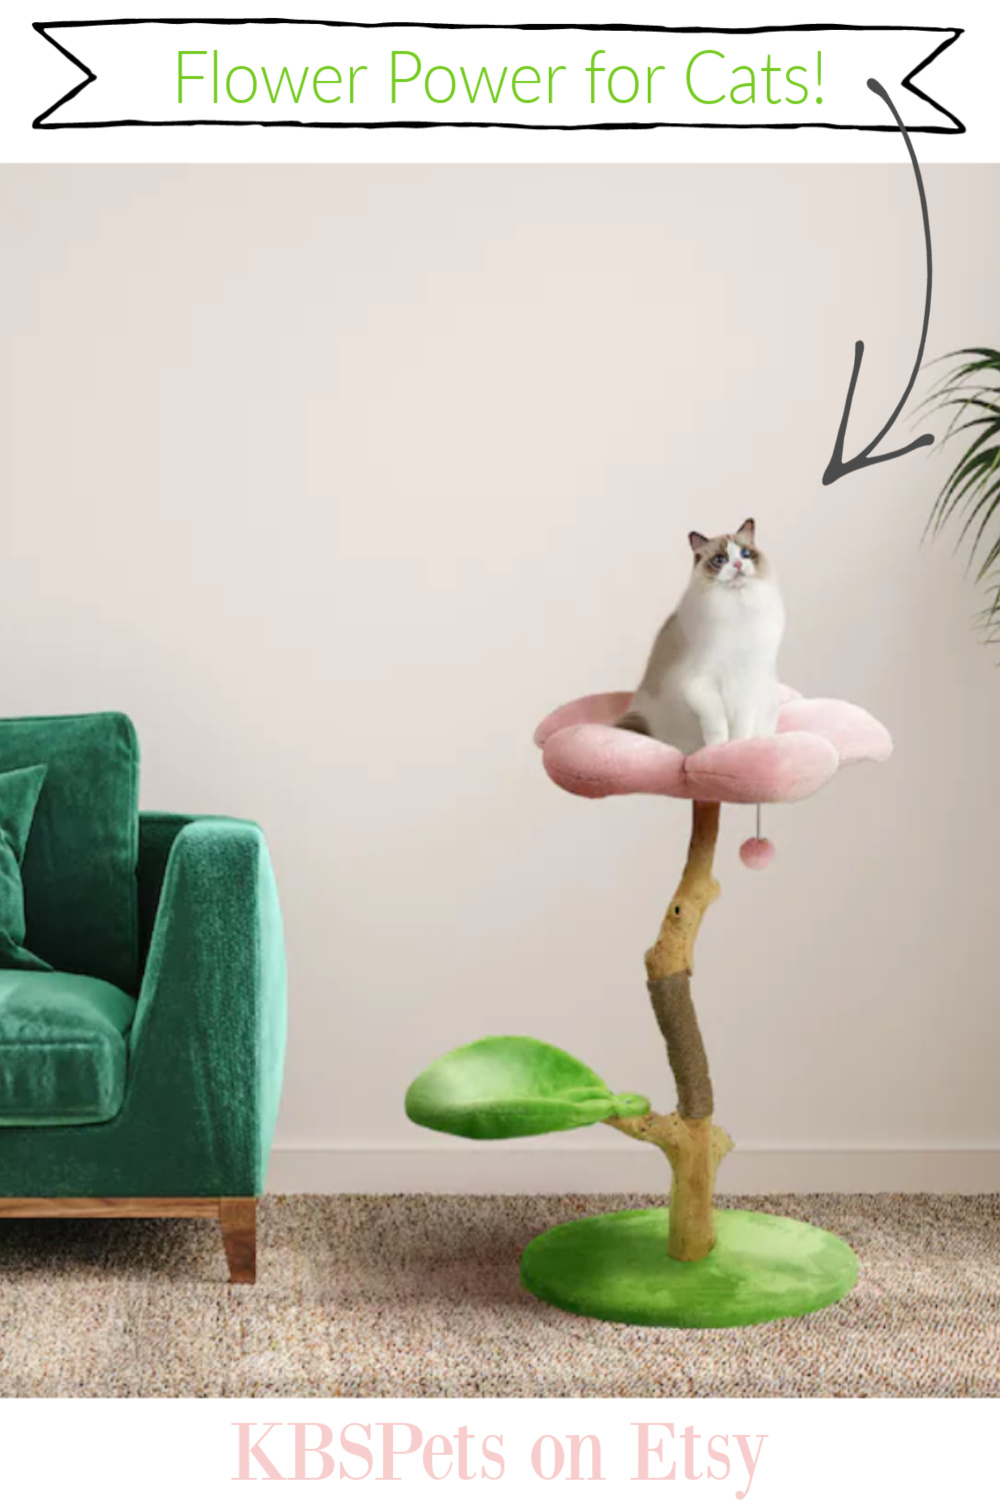 Cat Flower Tower Tree - a lovely handmade creation from KBSPETS on etsy! #cattree #cattower #catflowertower #cattoys